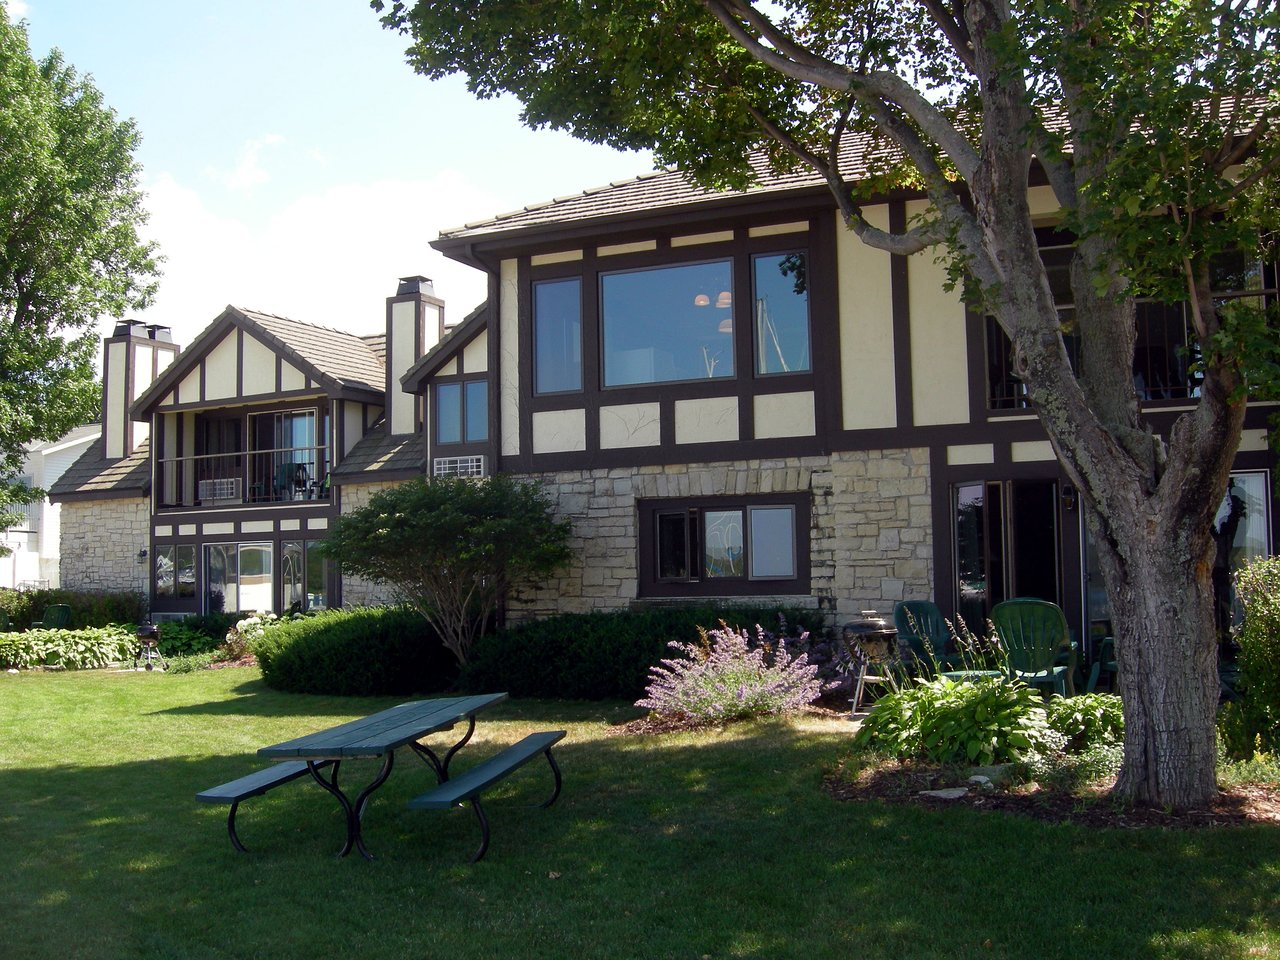 harbor guest house condominium reviews fish creek wi door rh tripadvisor com